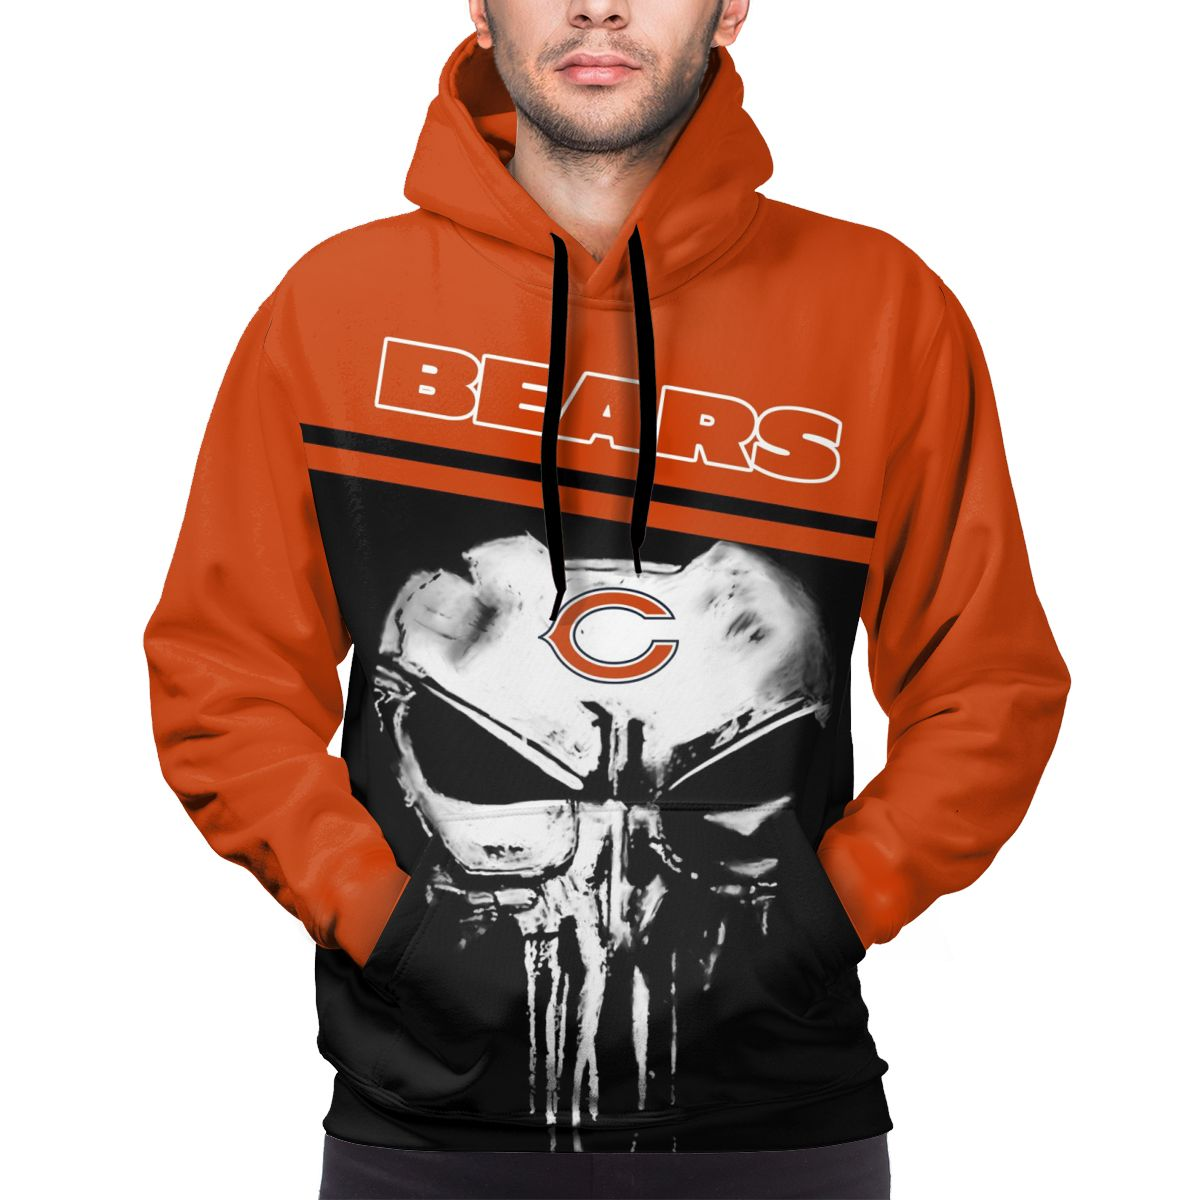 Bears Customize Hoodies For Men Pullover Sweatshirt